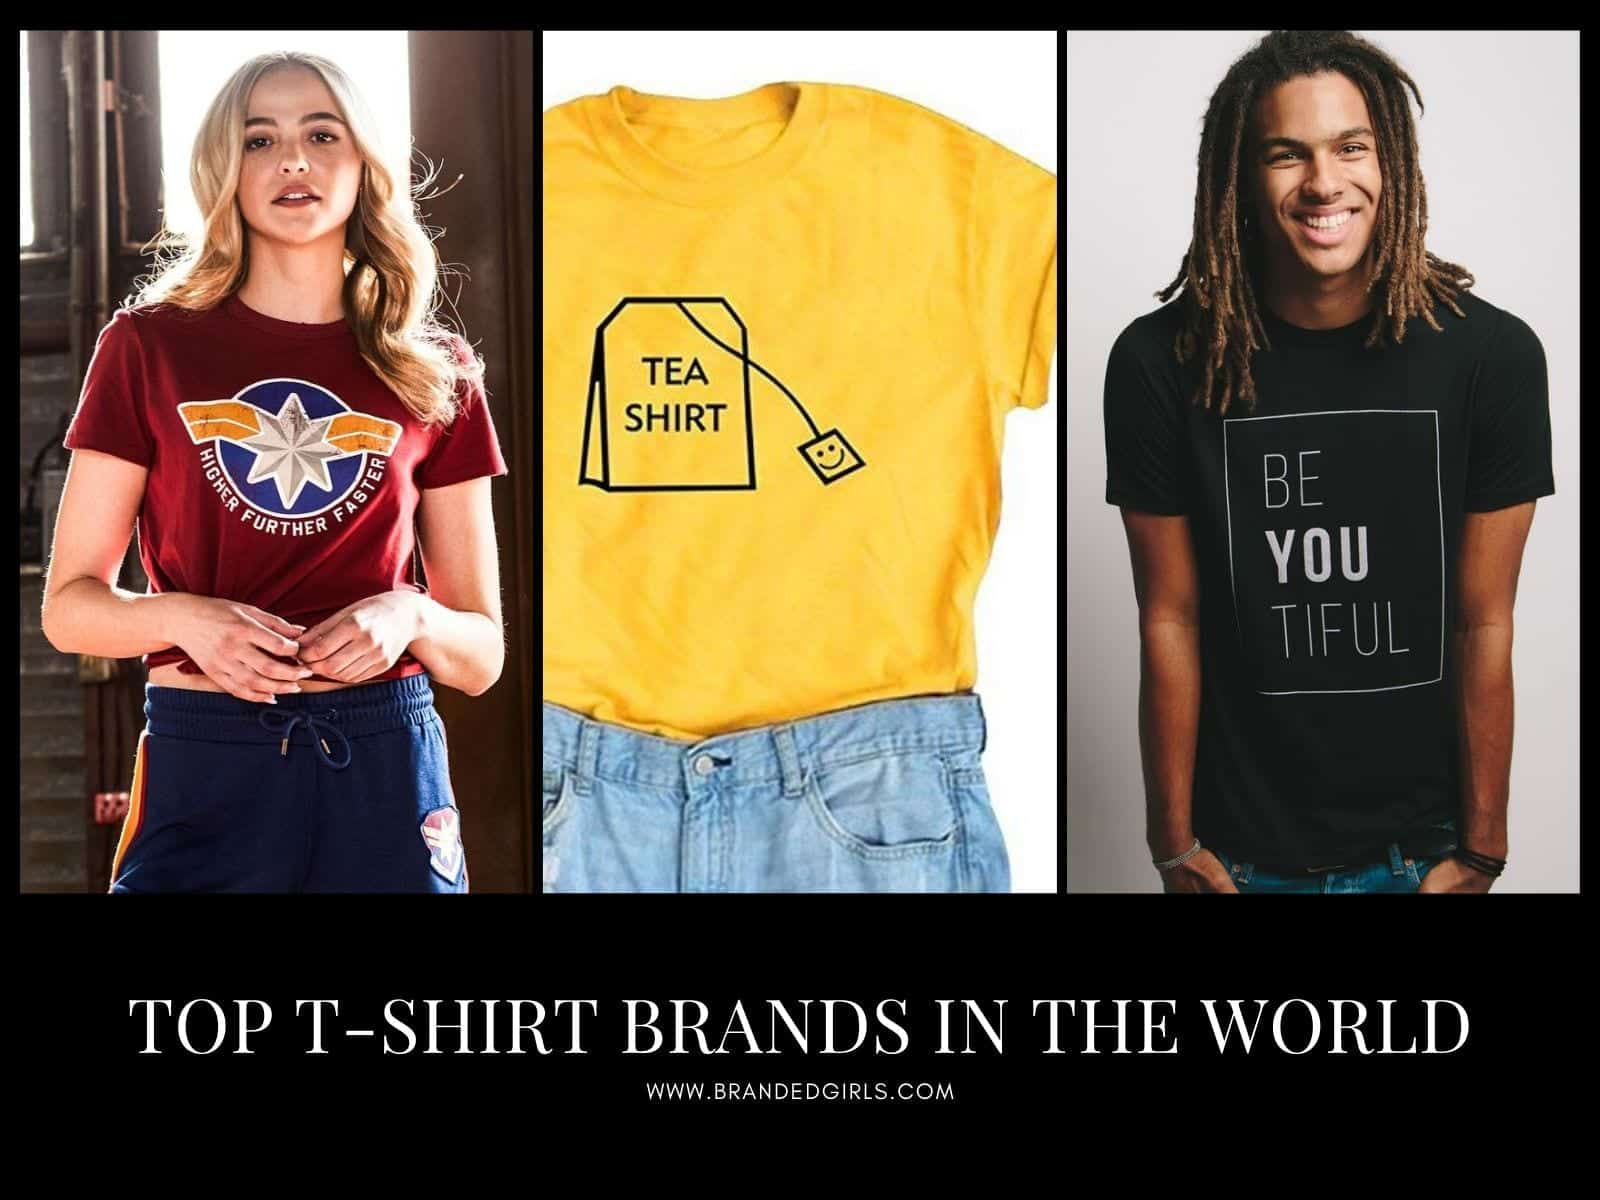 Top-T-Shirt-Brands-in-the-World Top 19 T-shirt Brands in the World For Men And Women